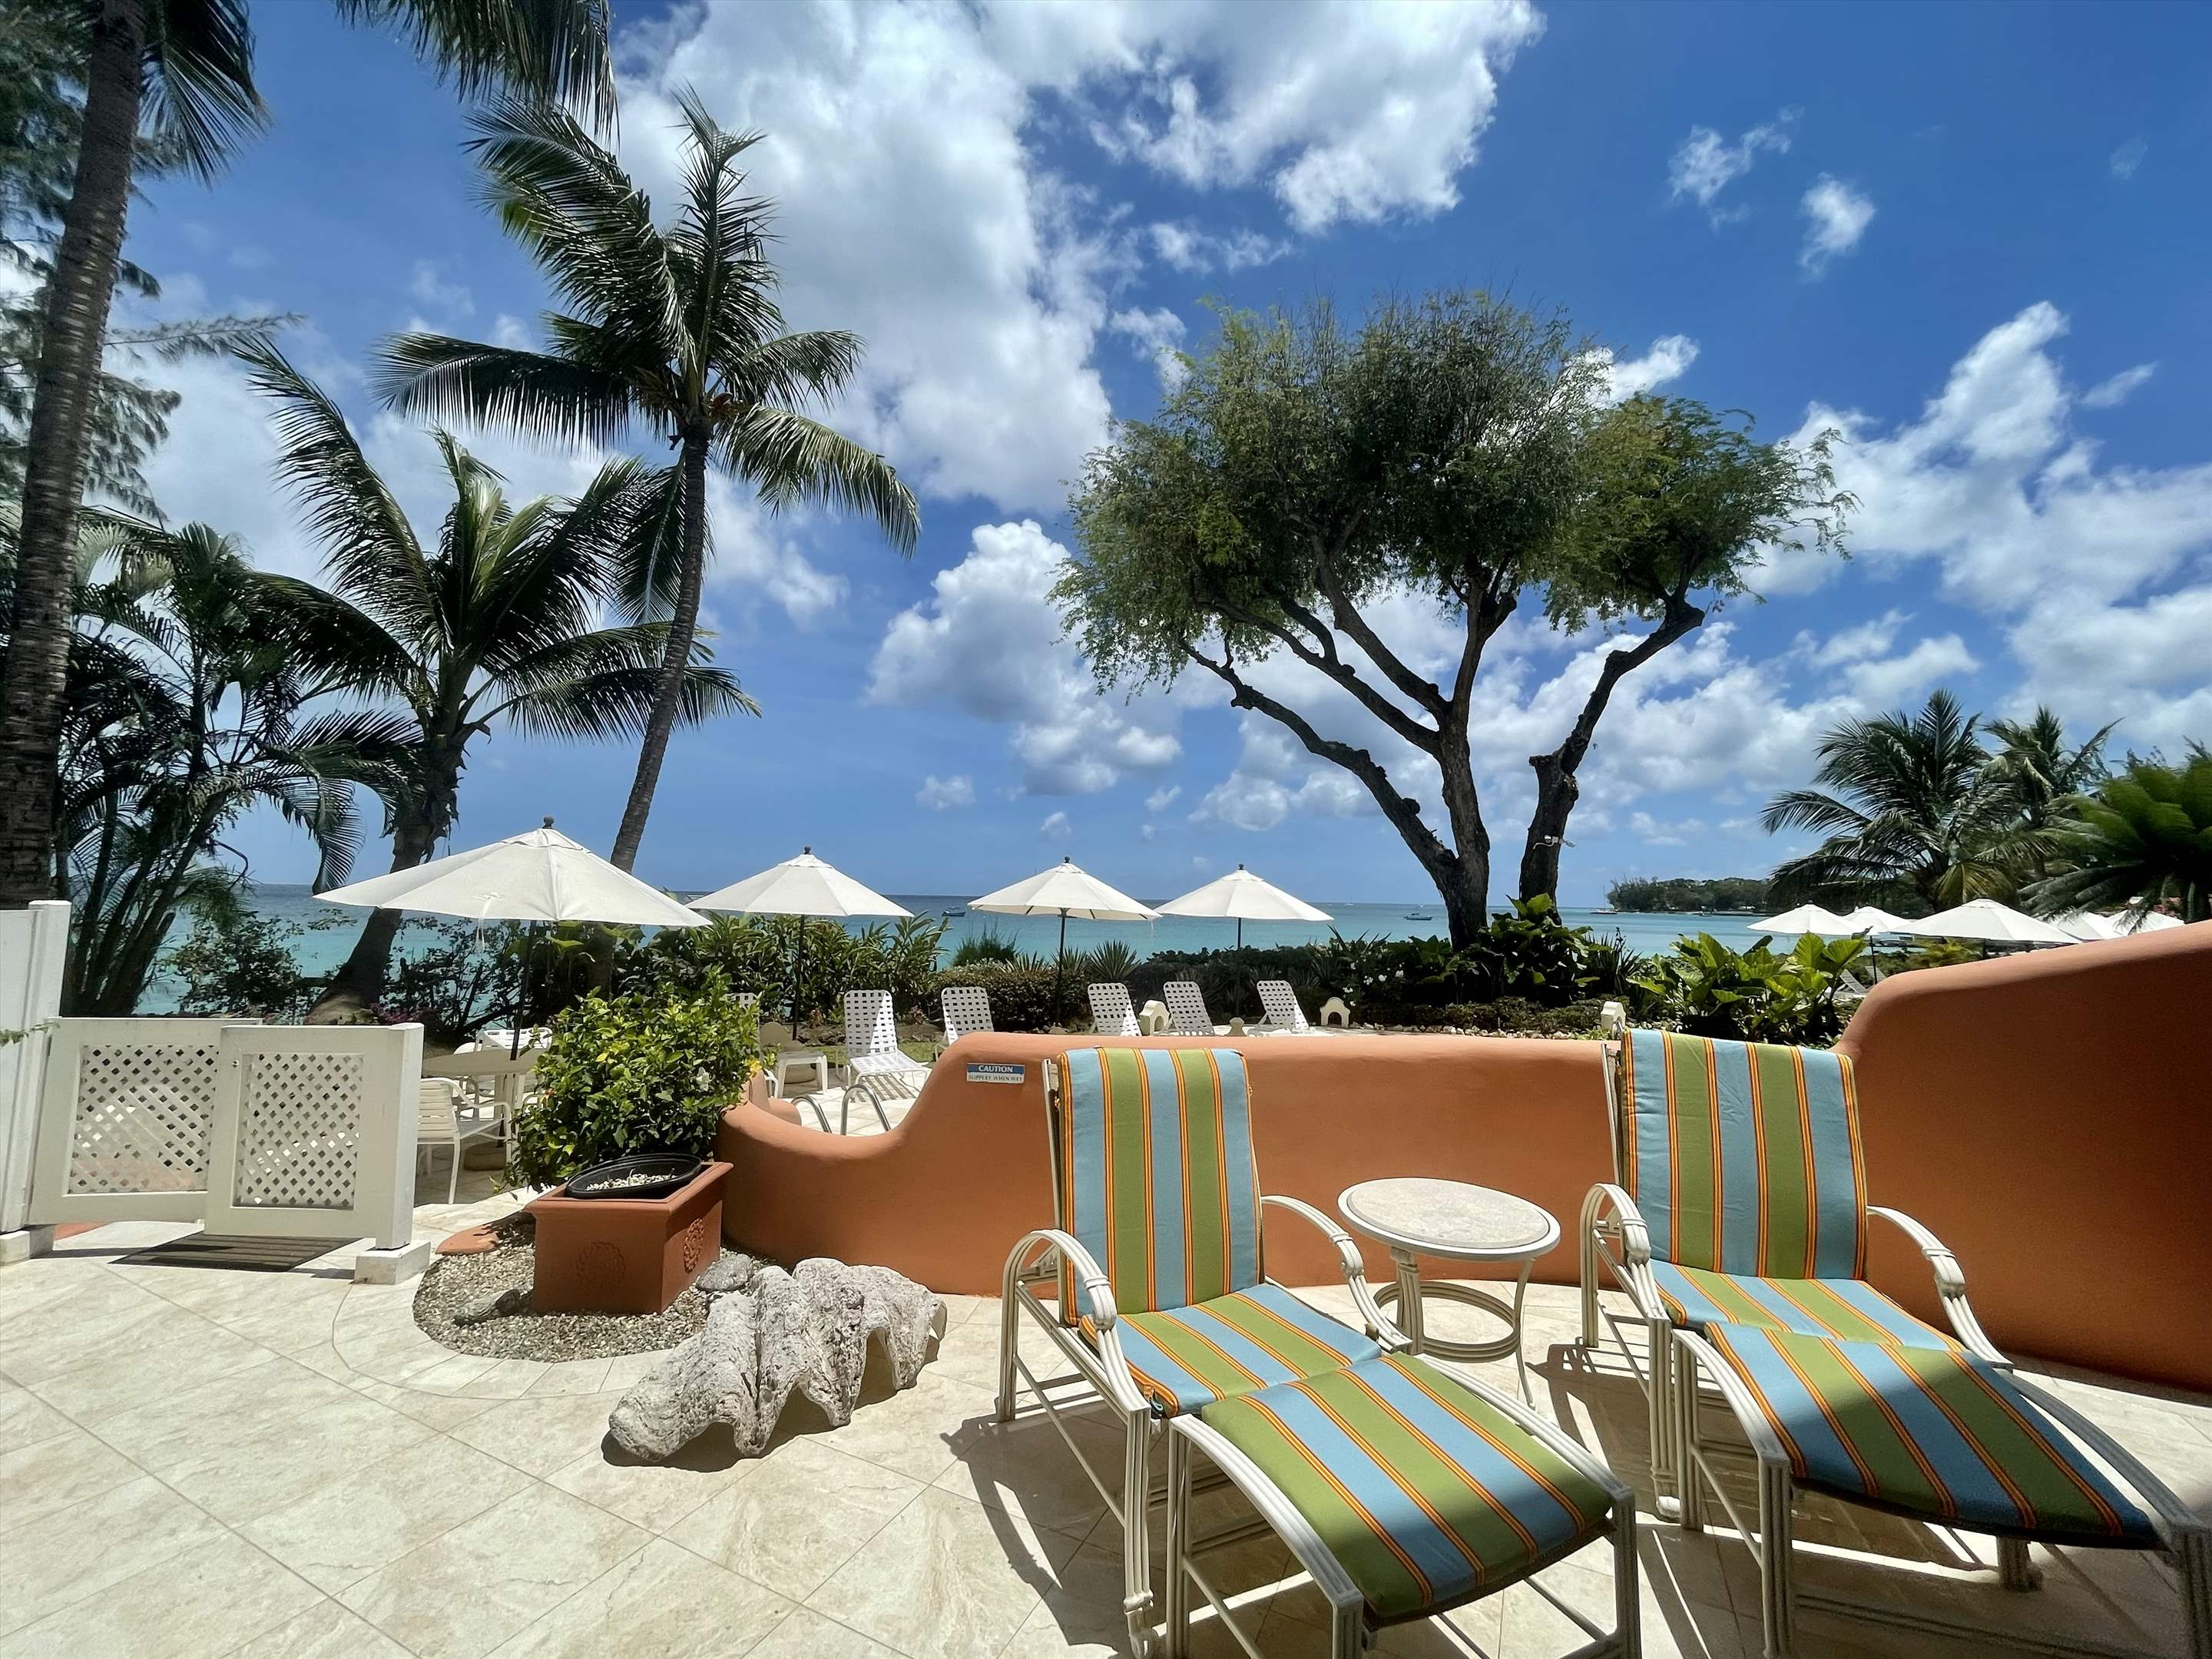 Villas on the Beach 101, 1 bedroom, 1 bedroom apartment in St. James & West Coast, Barbados Photo #3